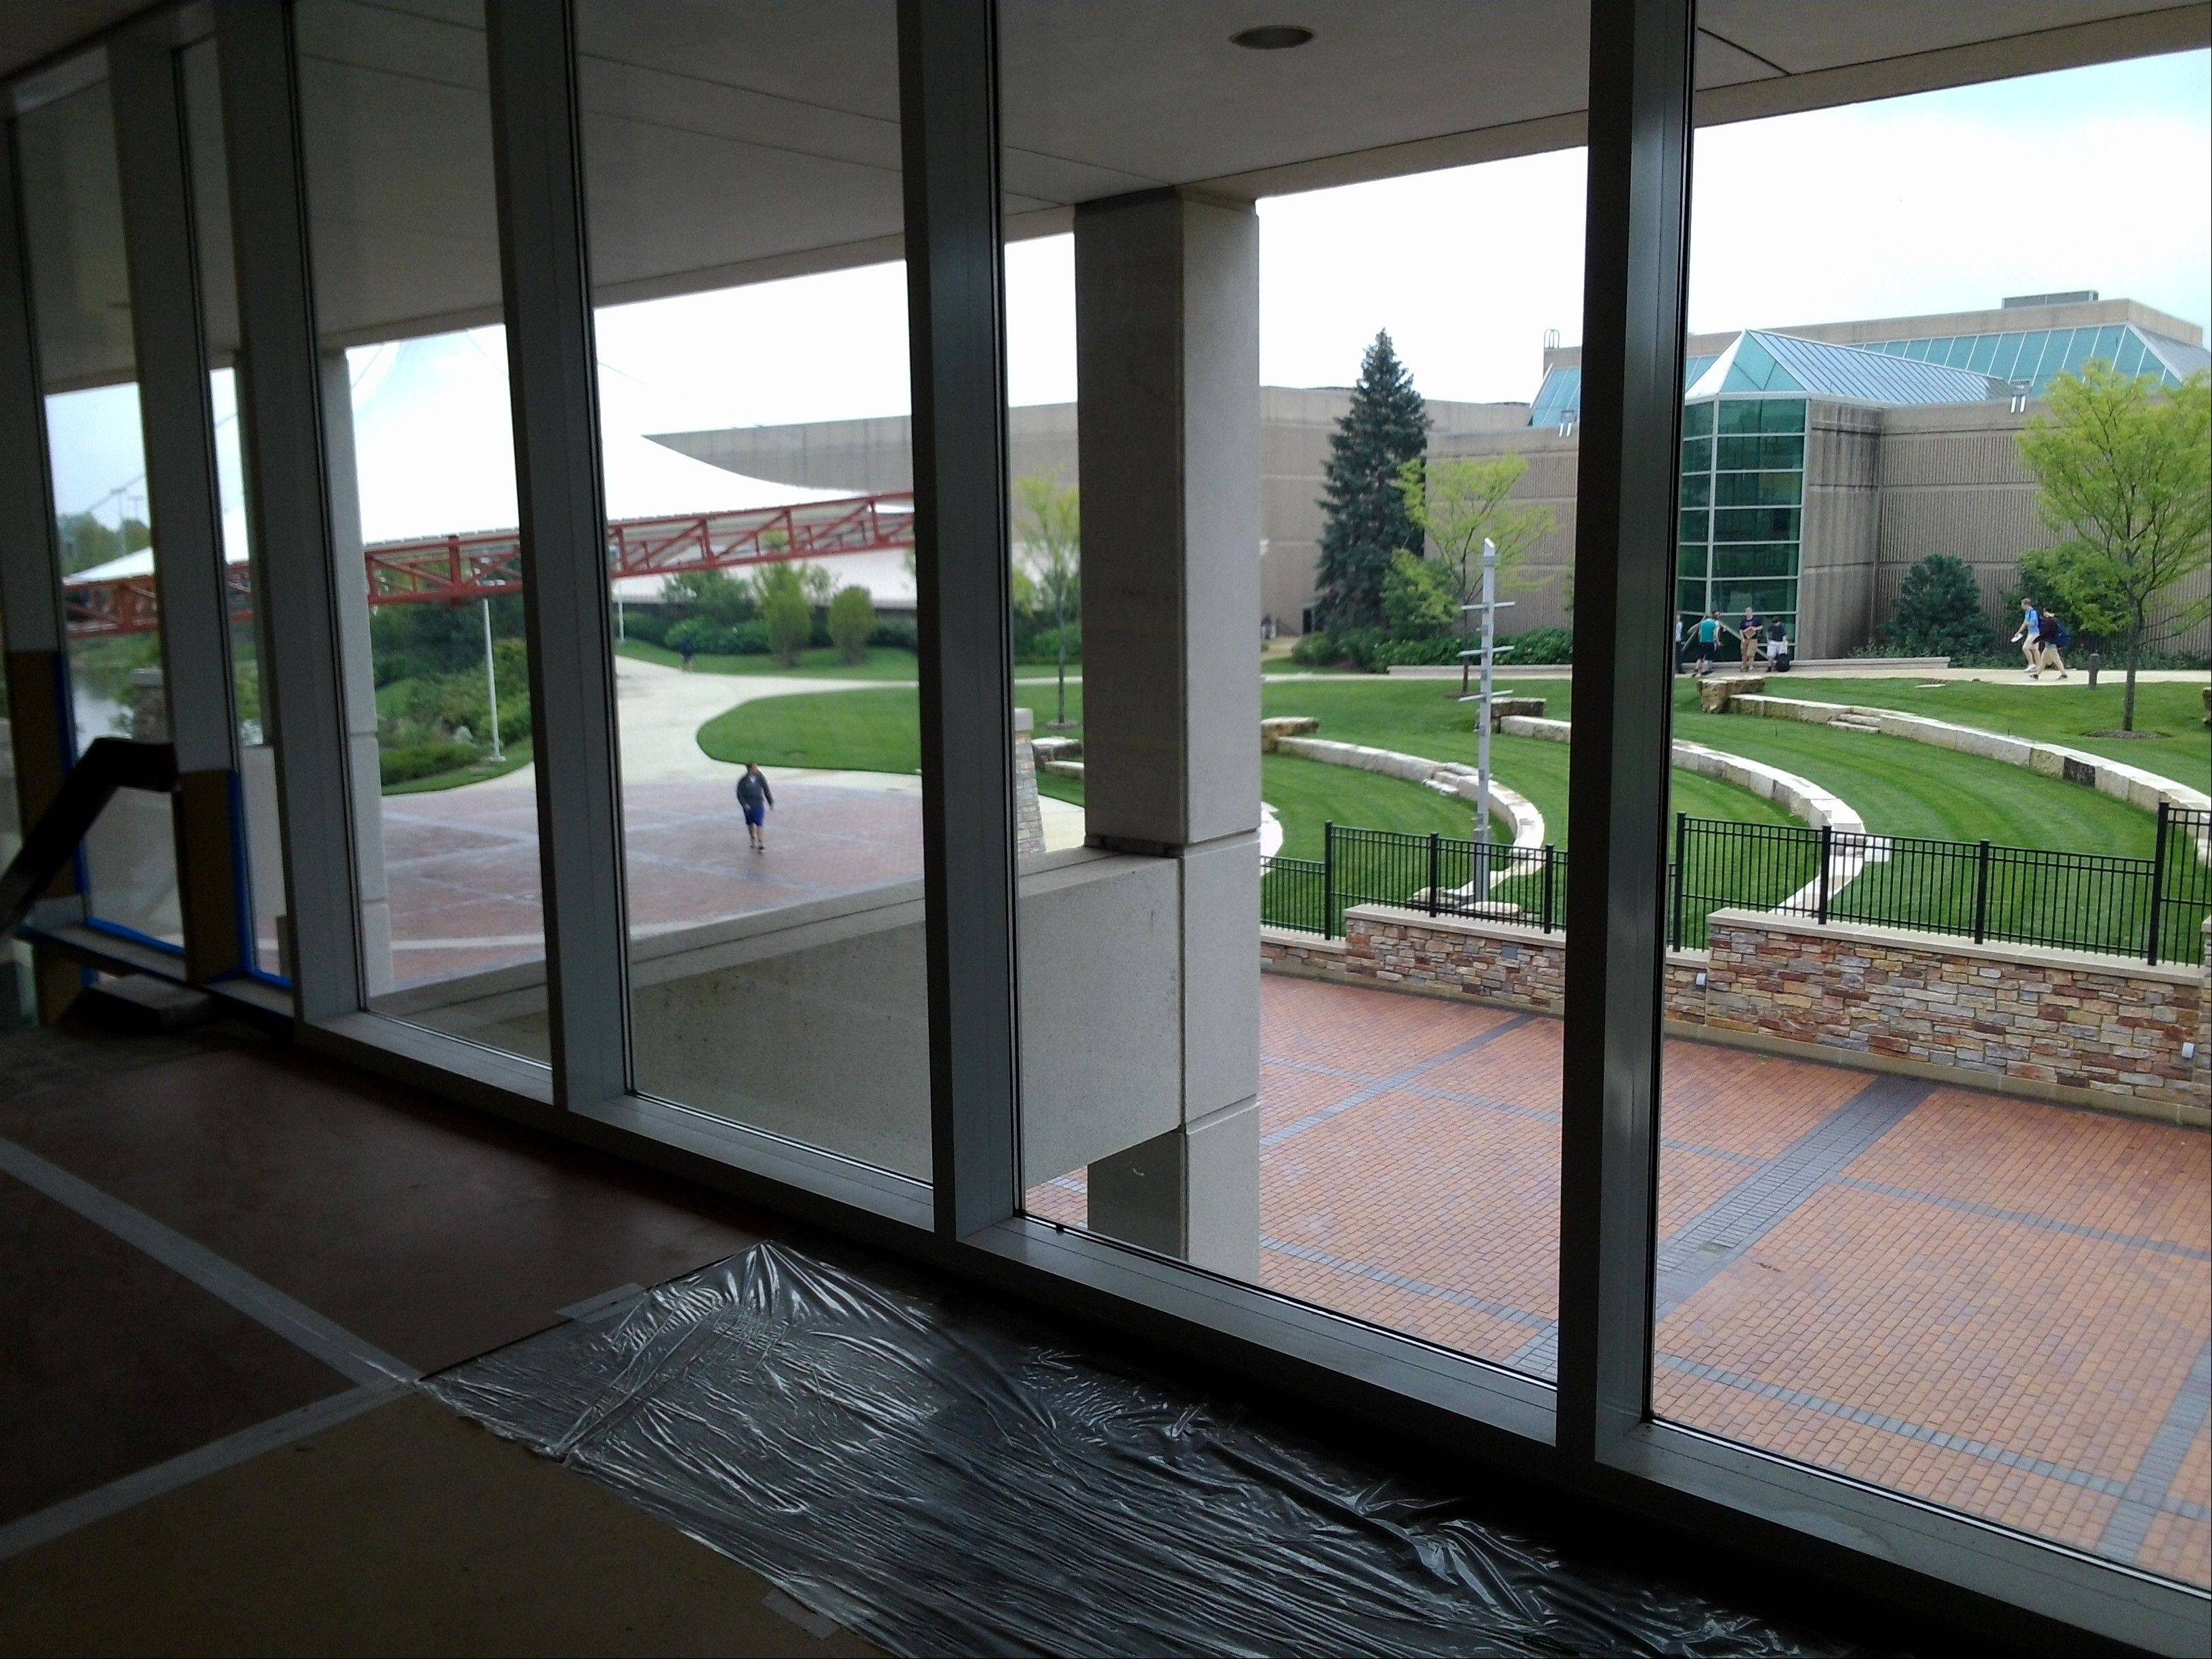 College of DuPage's renovated McAninch center almost ready